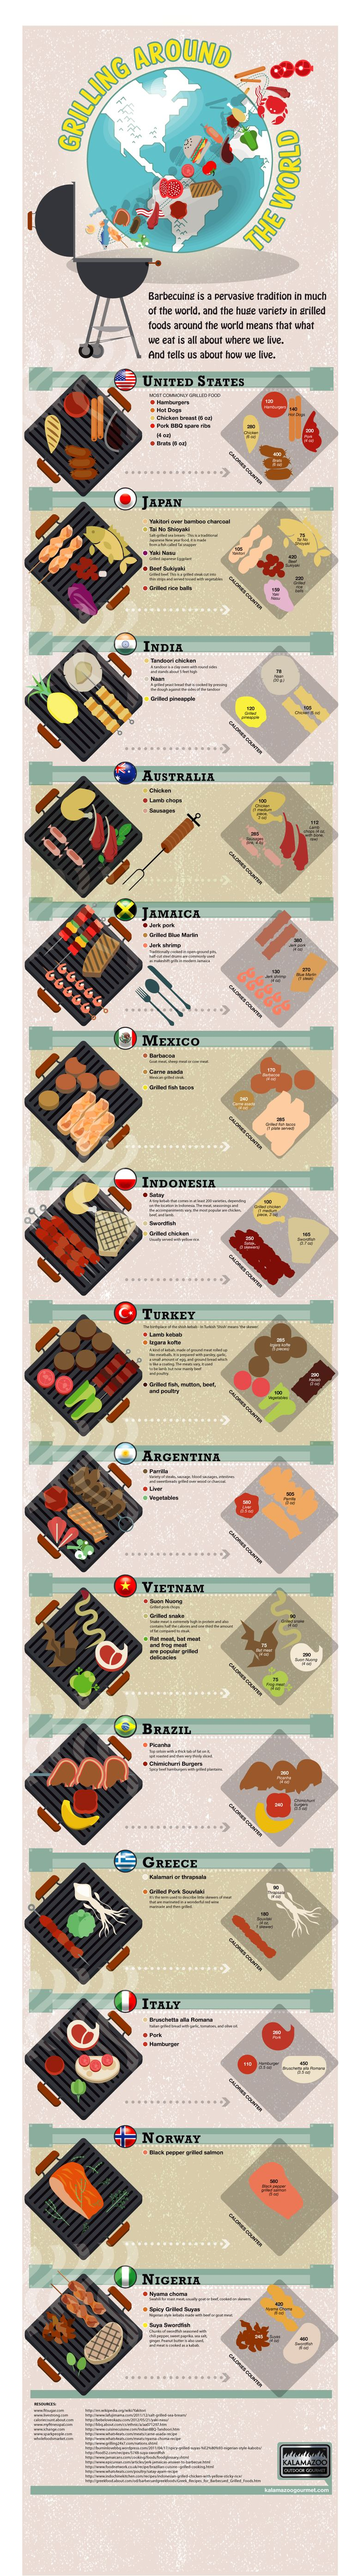 Check out this awesome Infographic about What People Around the World Grill!